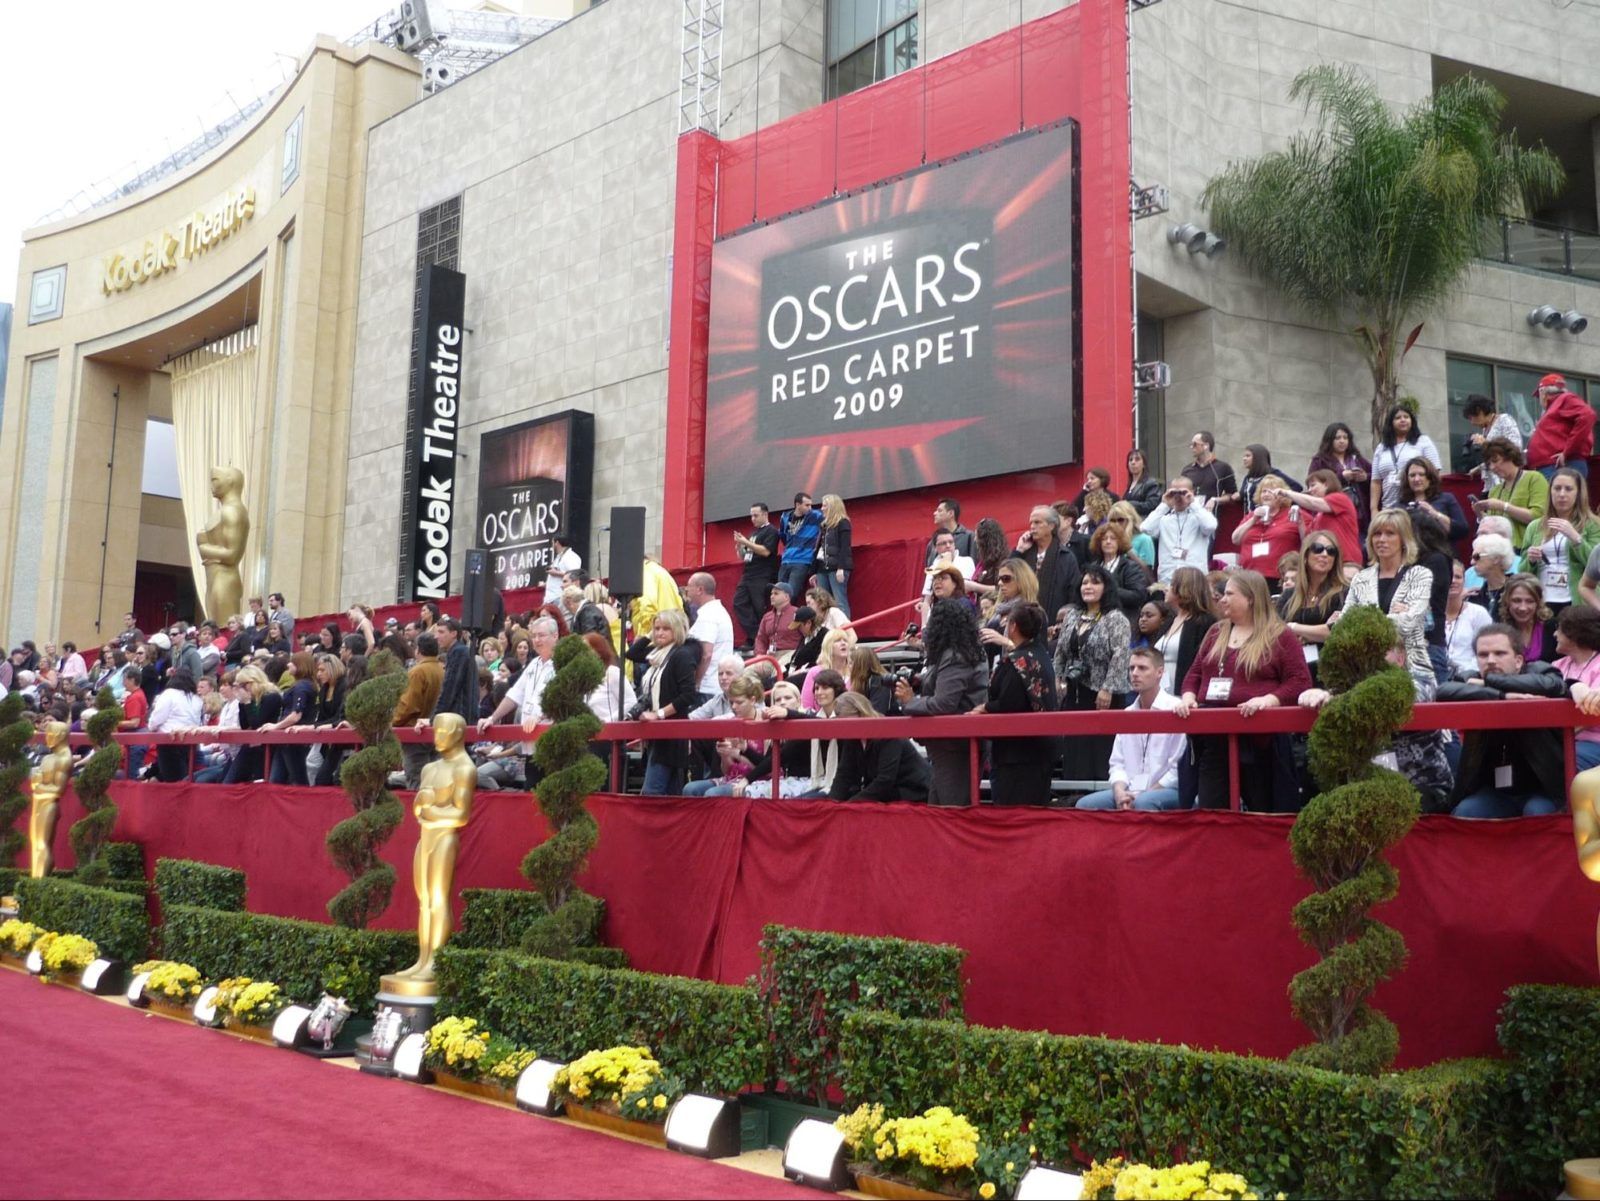 The Oscars Red Carpet 2009